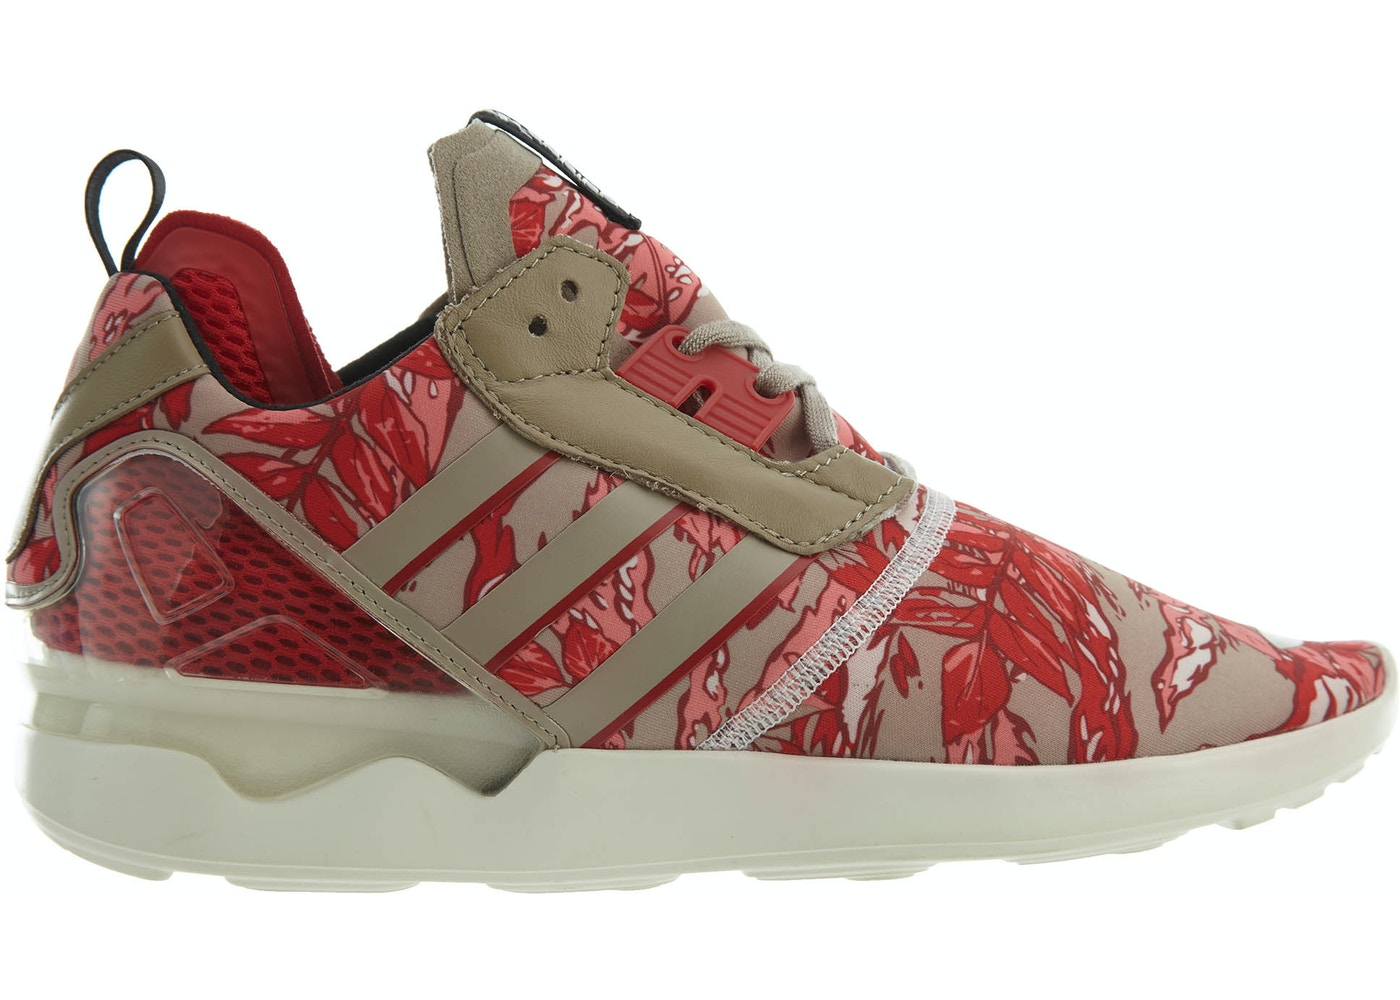 innovative design 59cc1 c9fd1 adidas Zx 8000 Boost Pink/Red-Grey